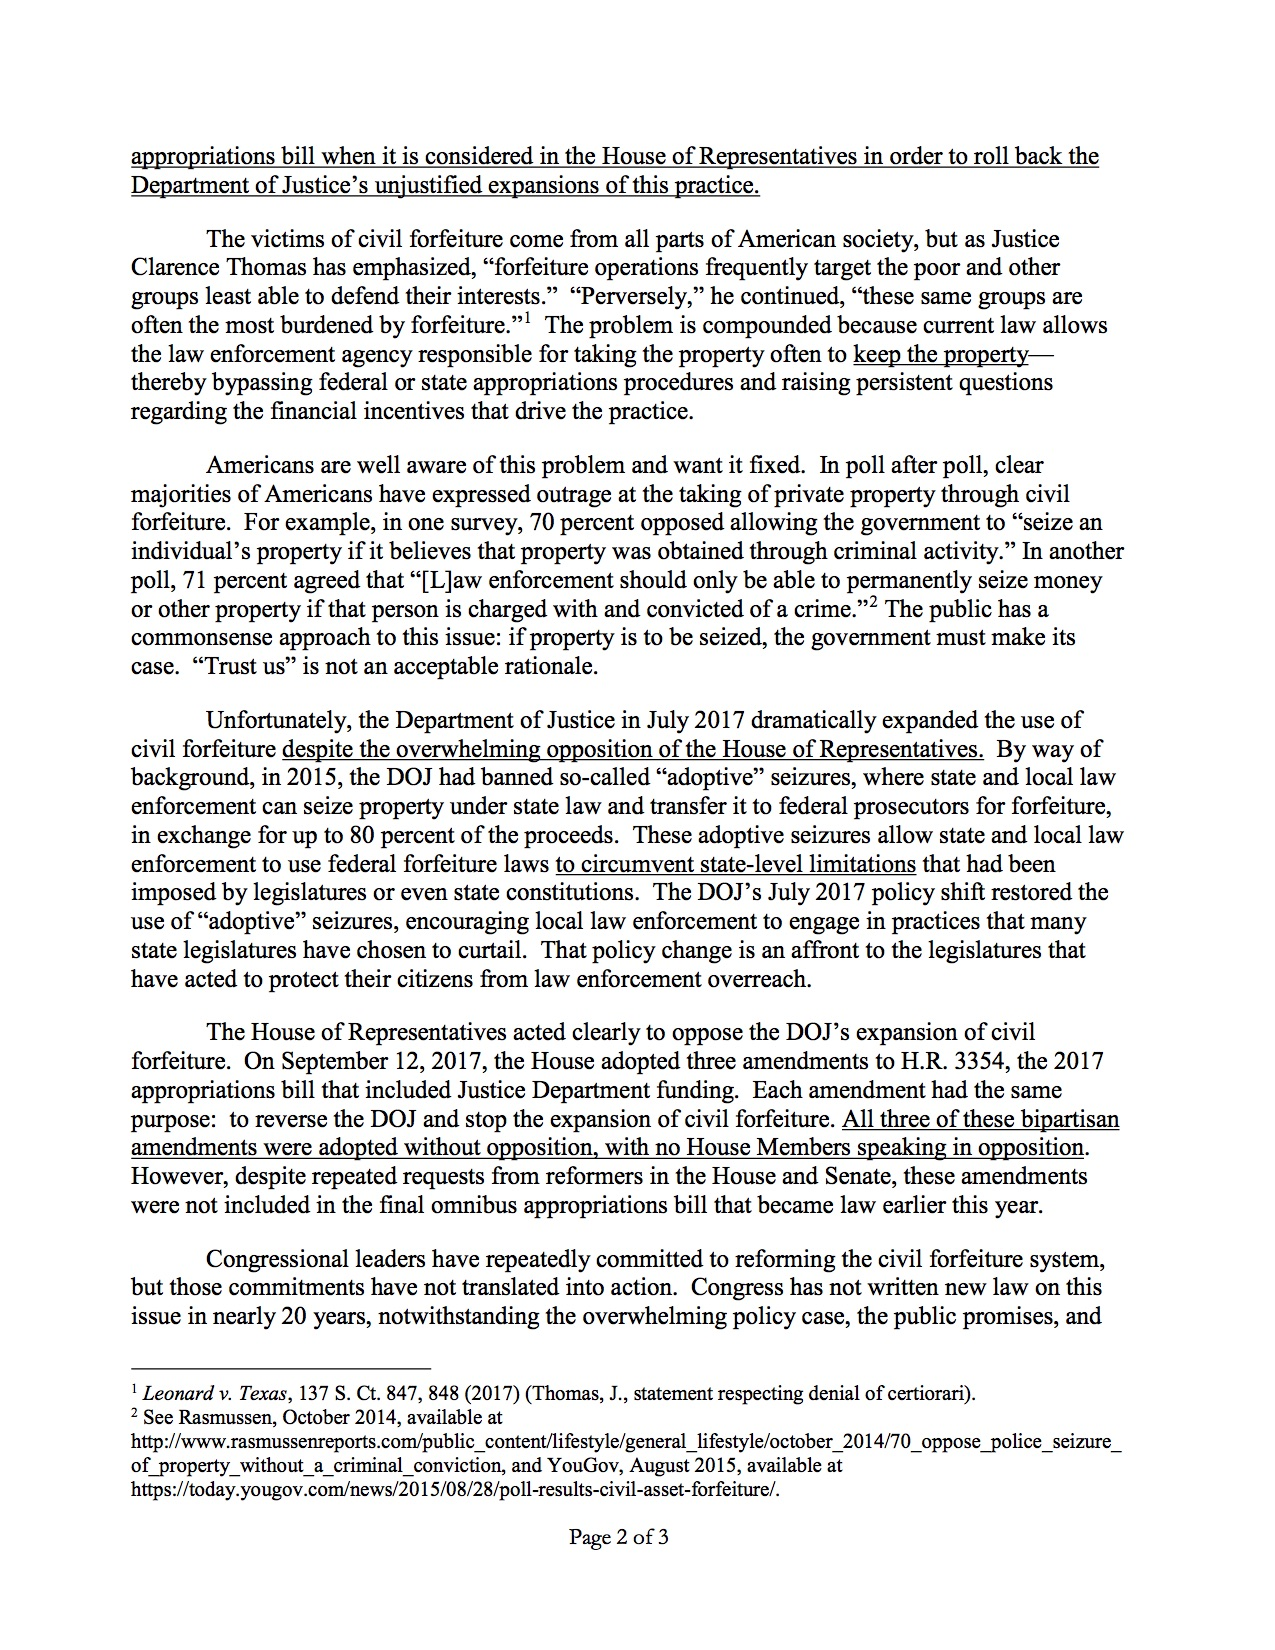 2Forfeiture_Coalition_-_July_2018_Letter_to_House_Members_1_.jpg